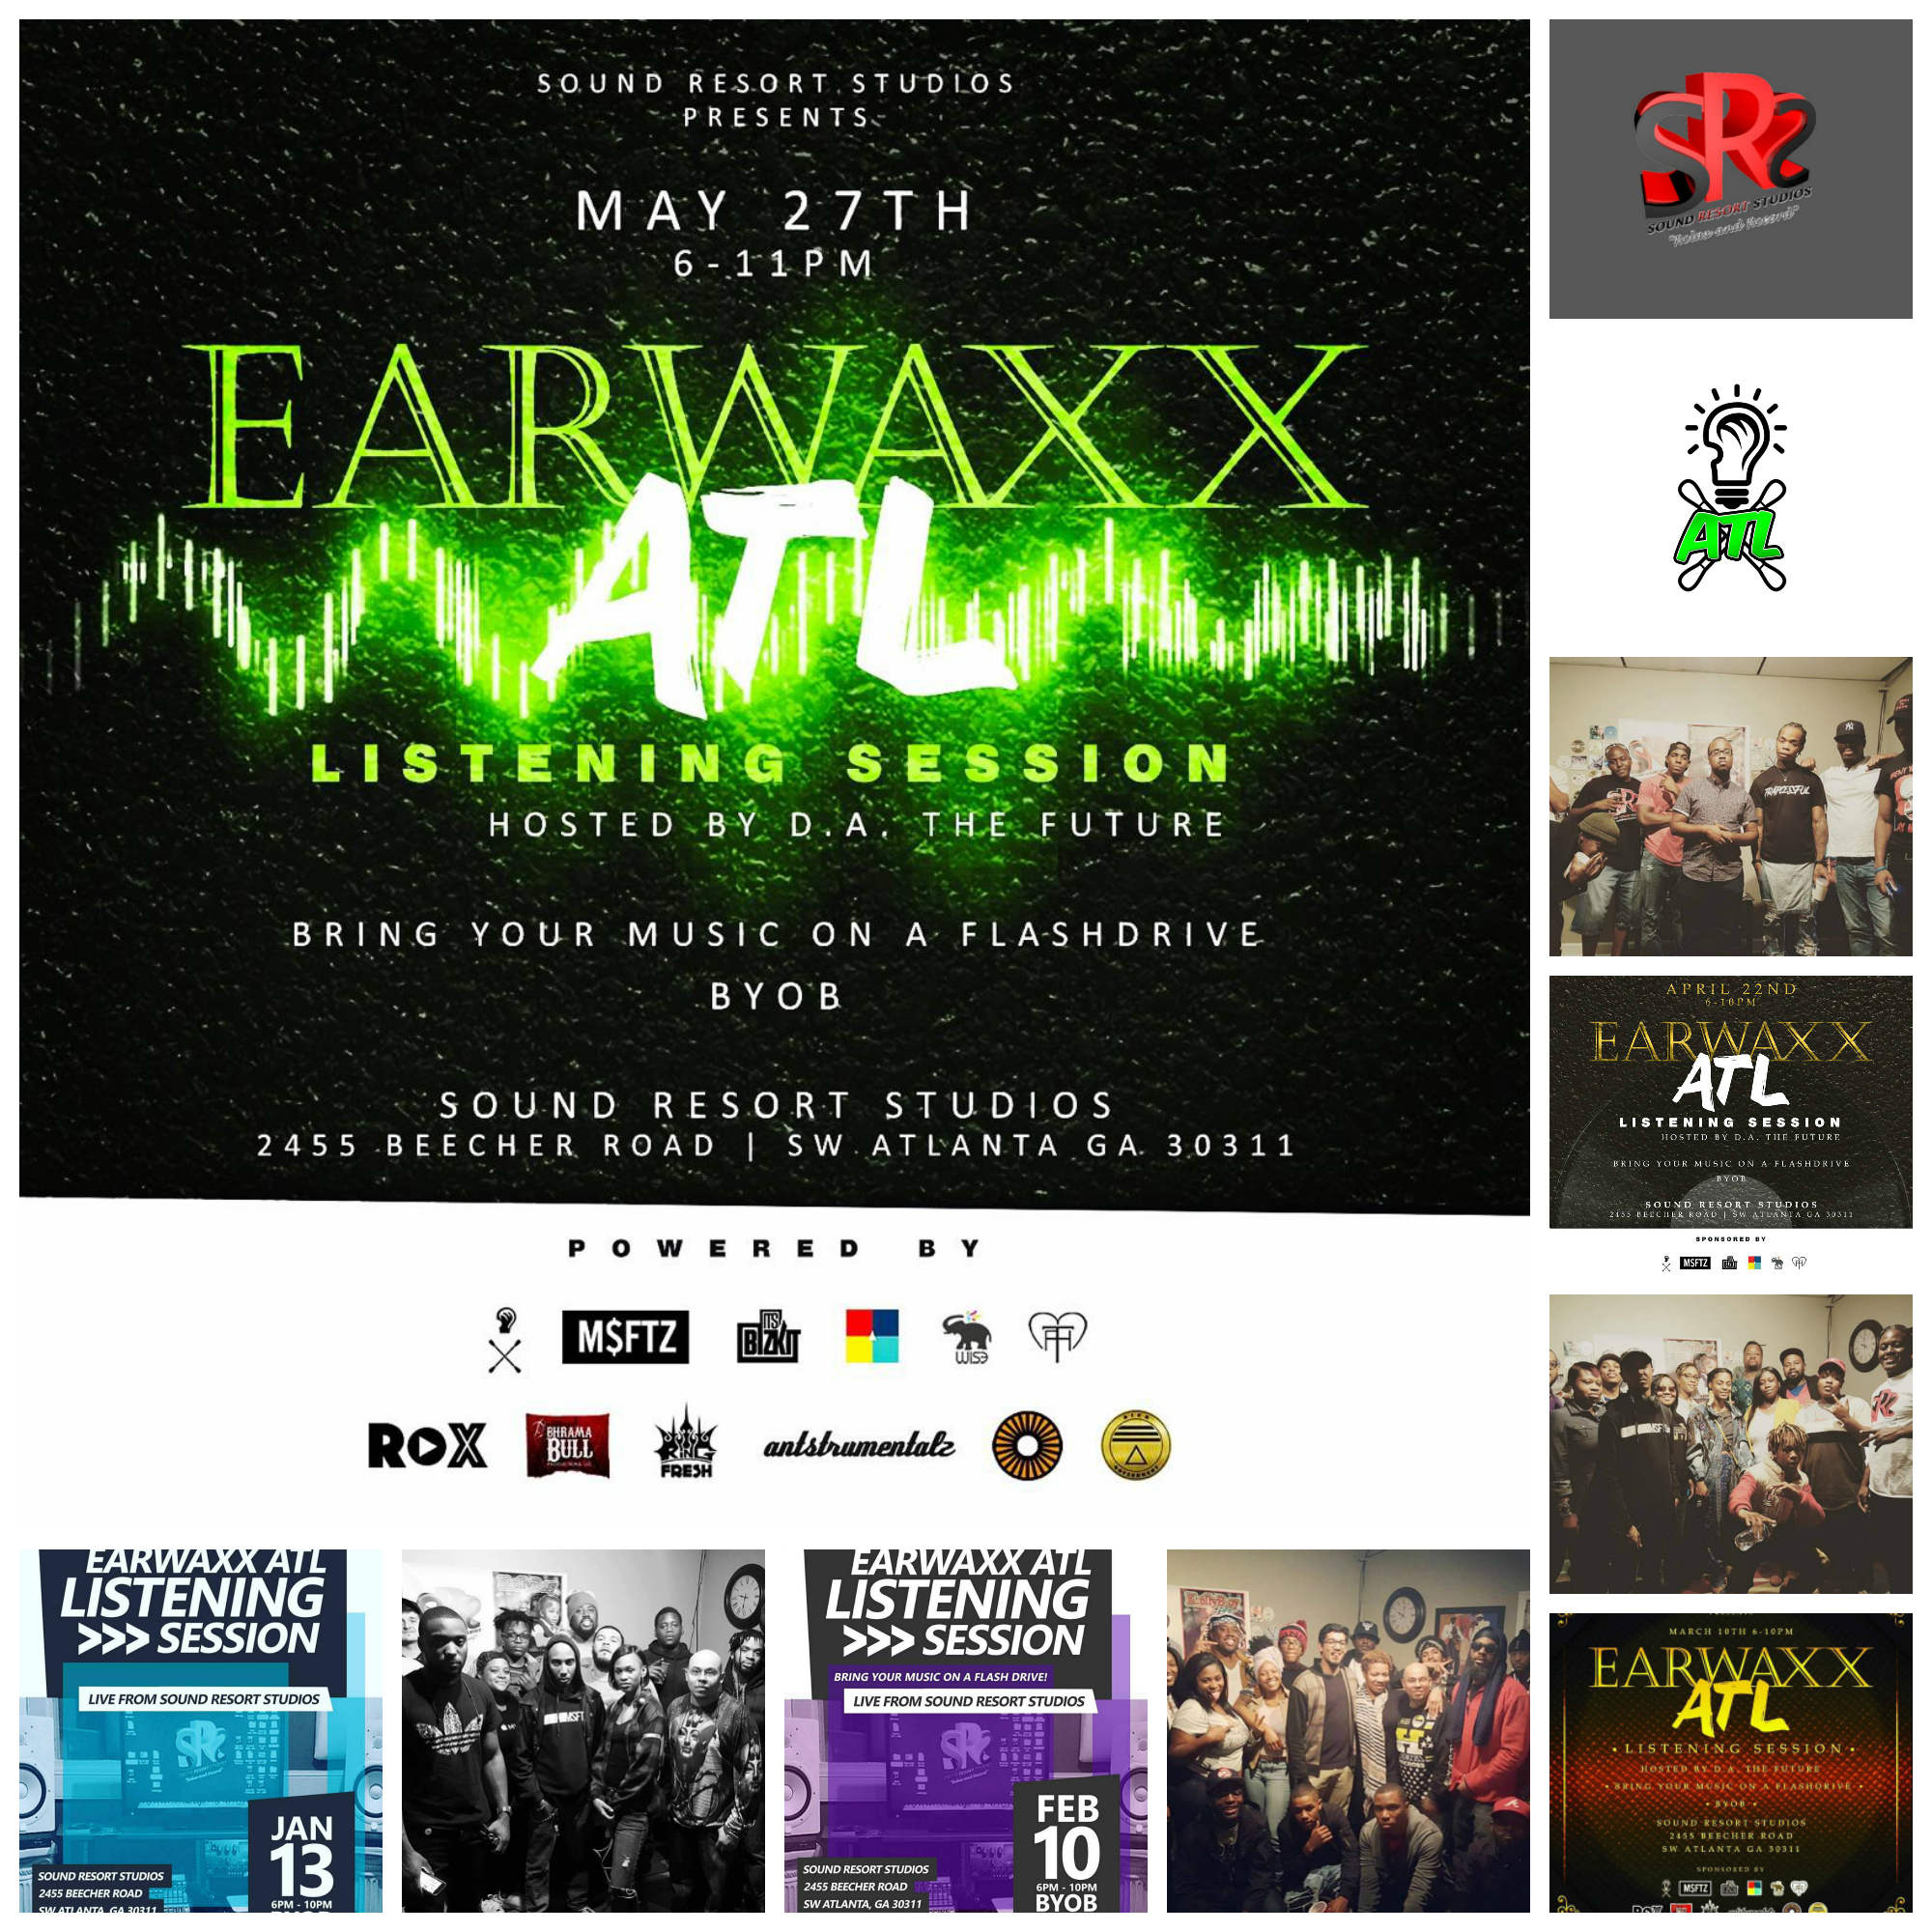 5th Earwaxx Event